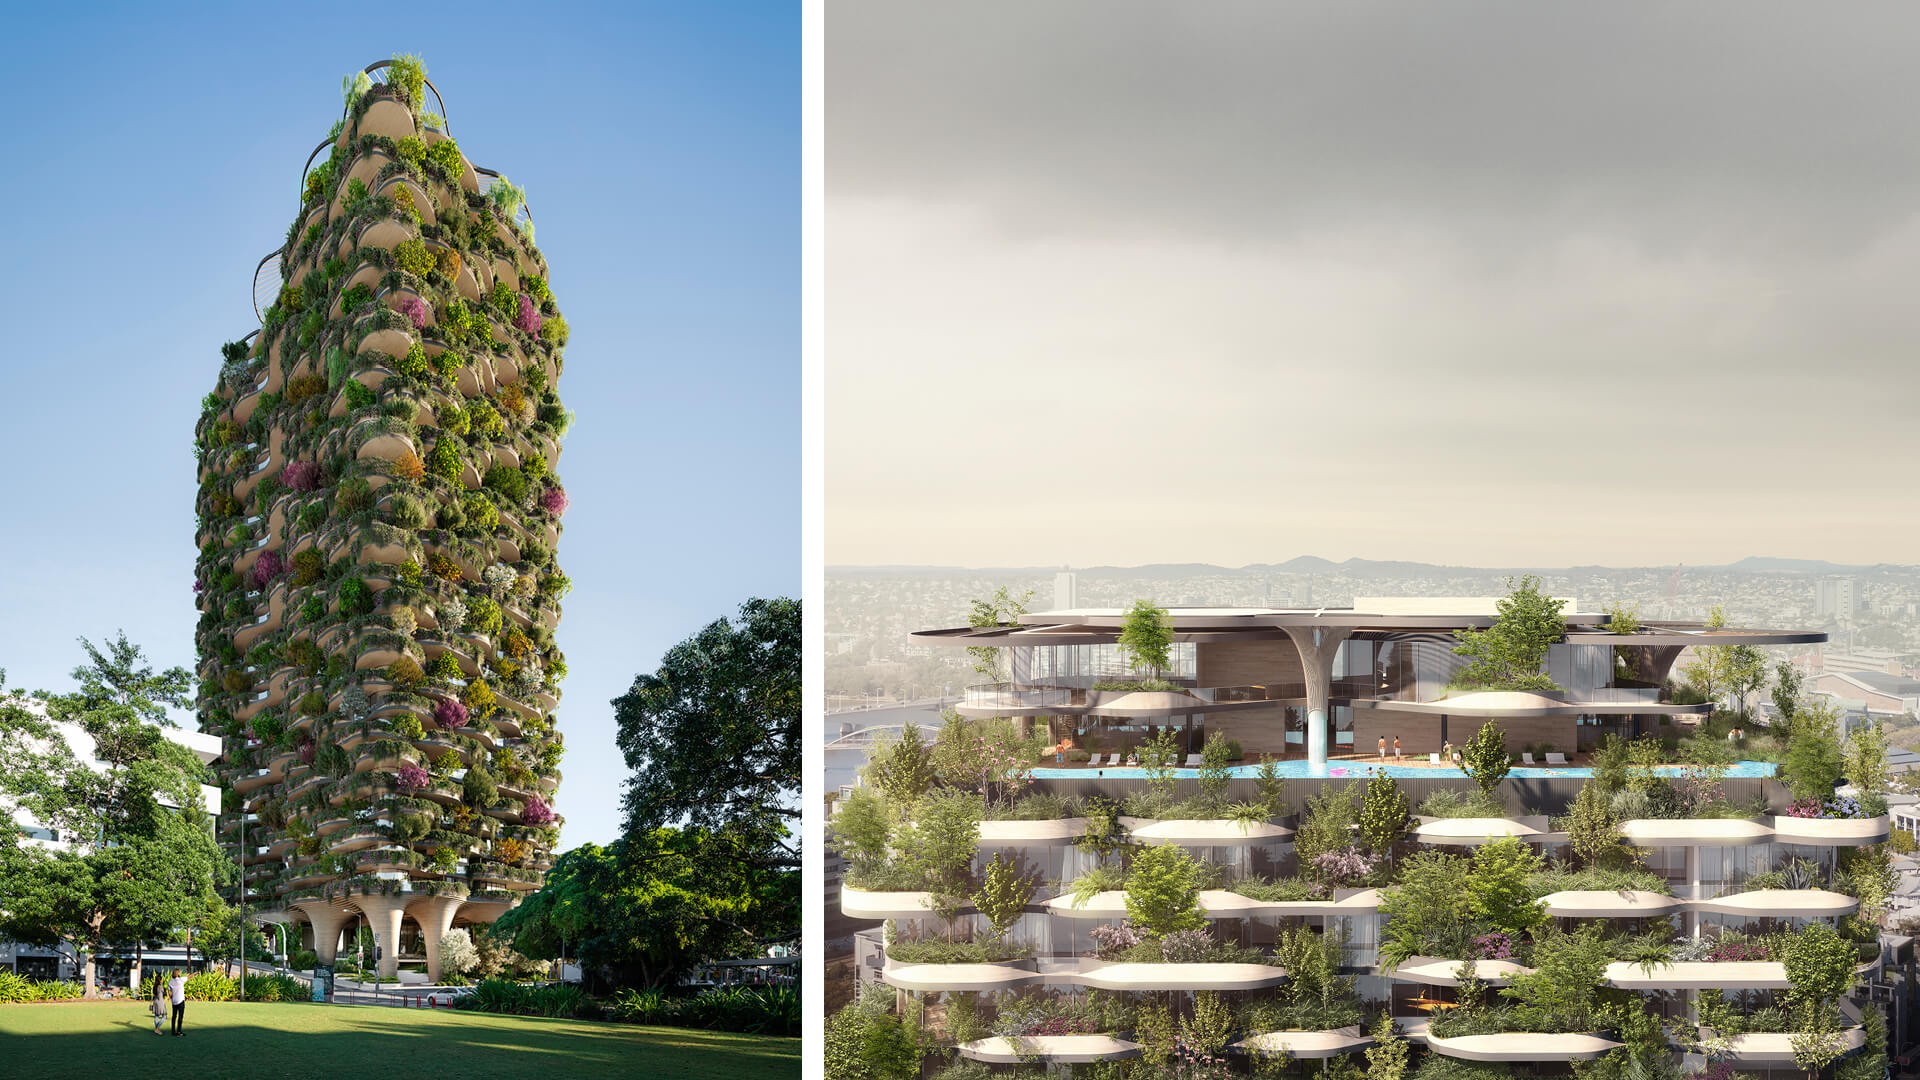 A glimpse of 'Urban Forest' in Brisbane by Koichi Takada Architects | Urban Forest by Koichi Takada Architects | STIRworld